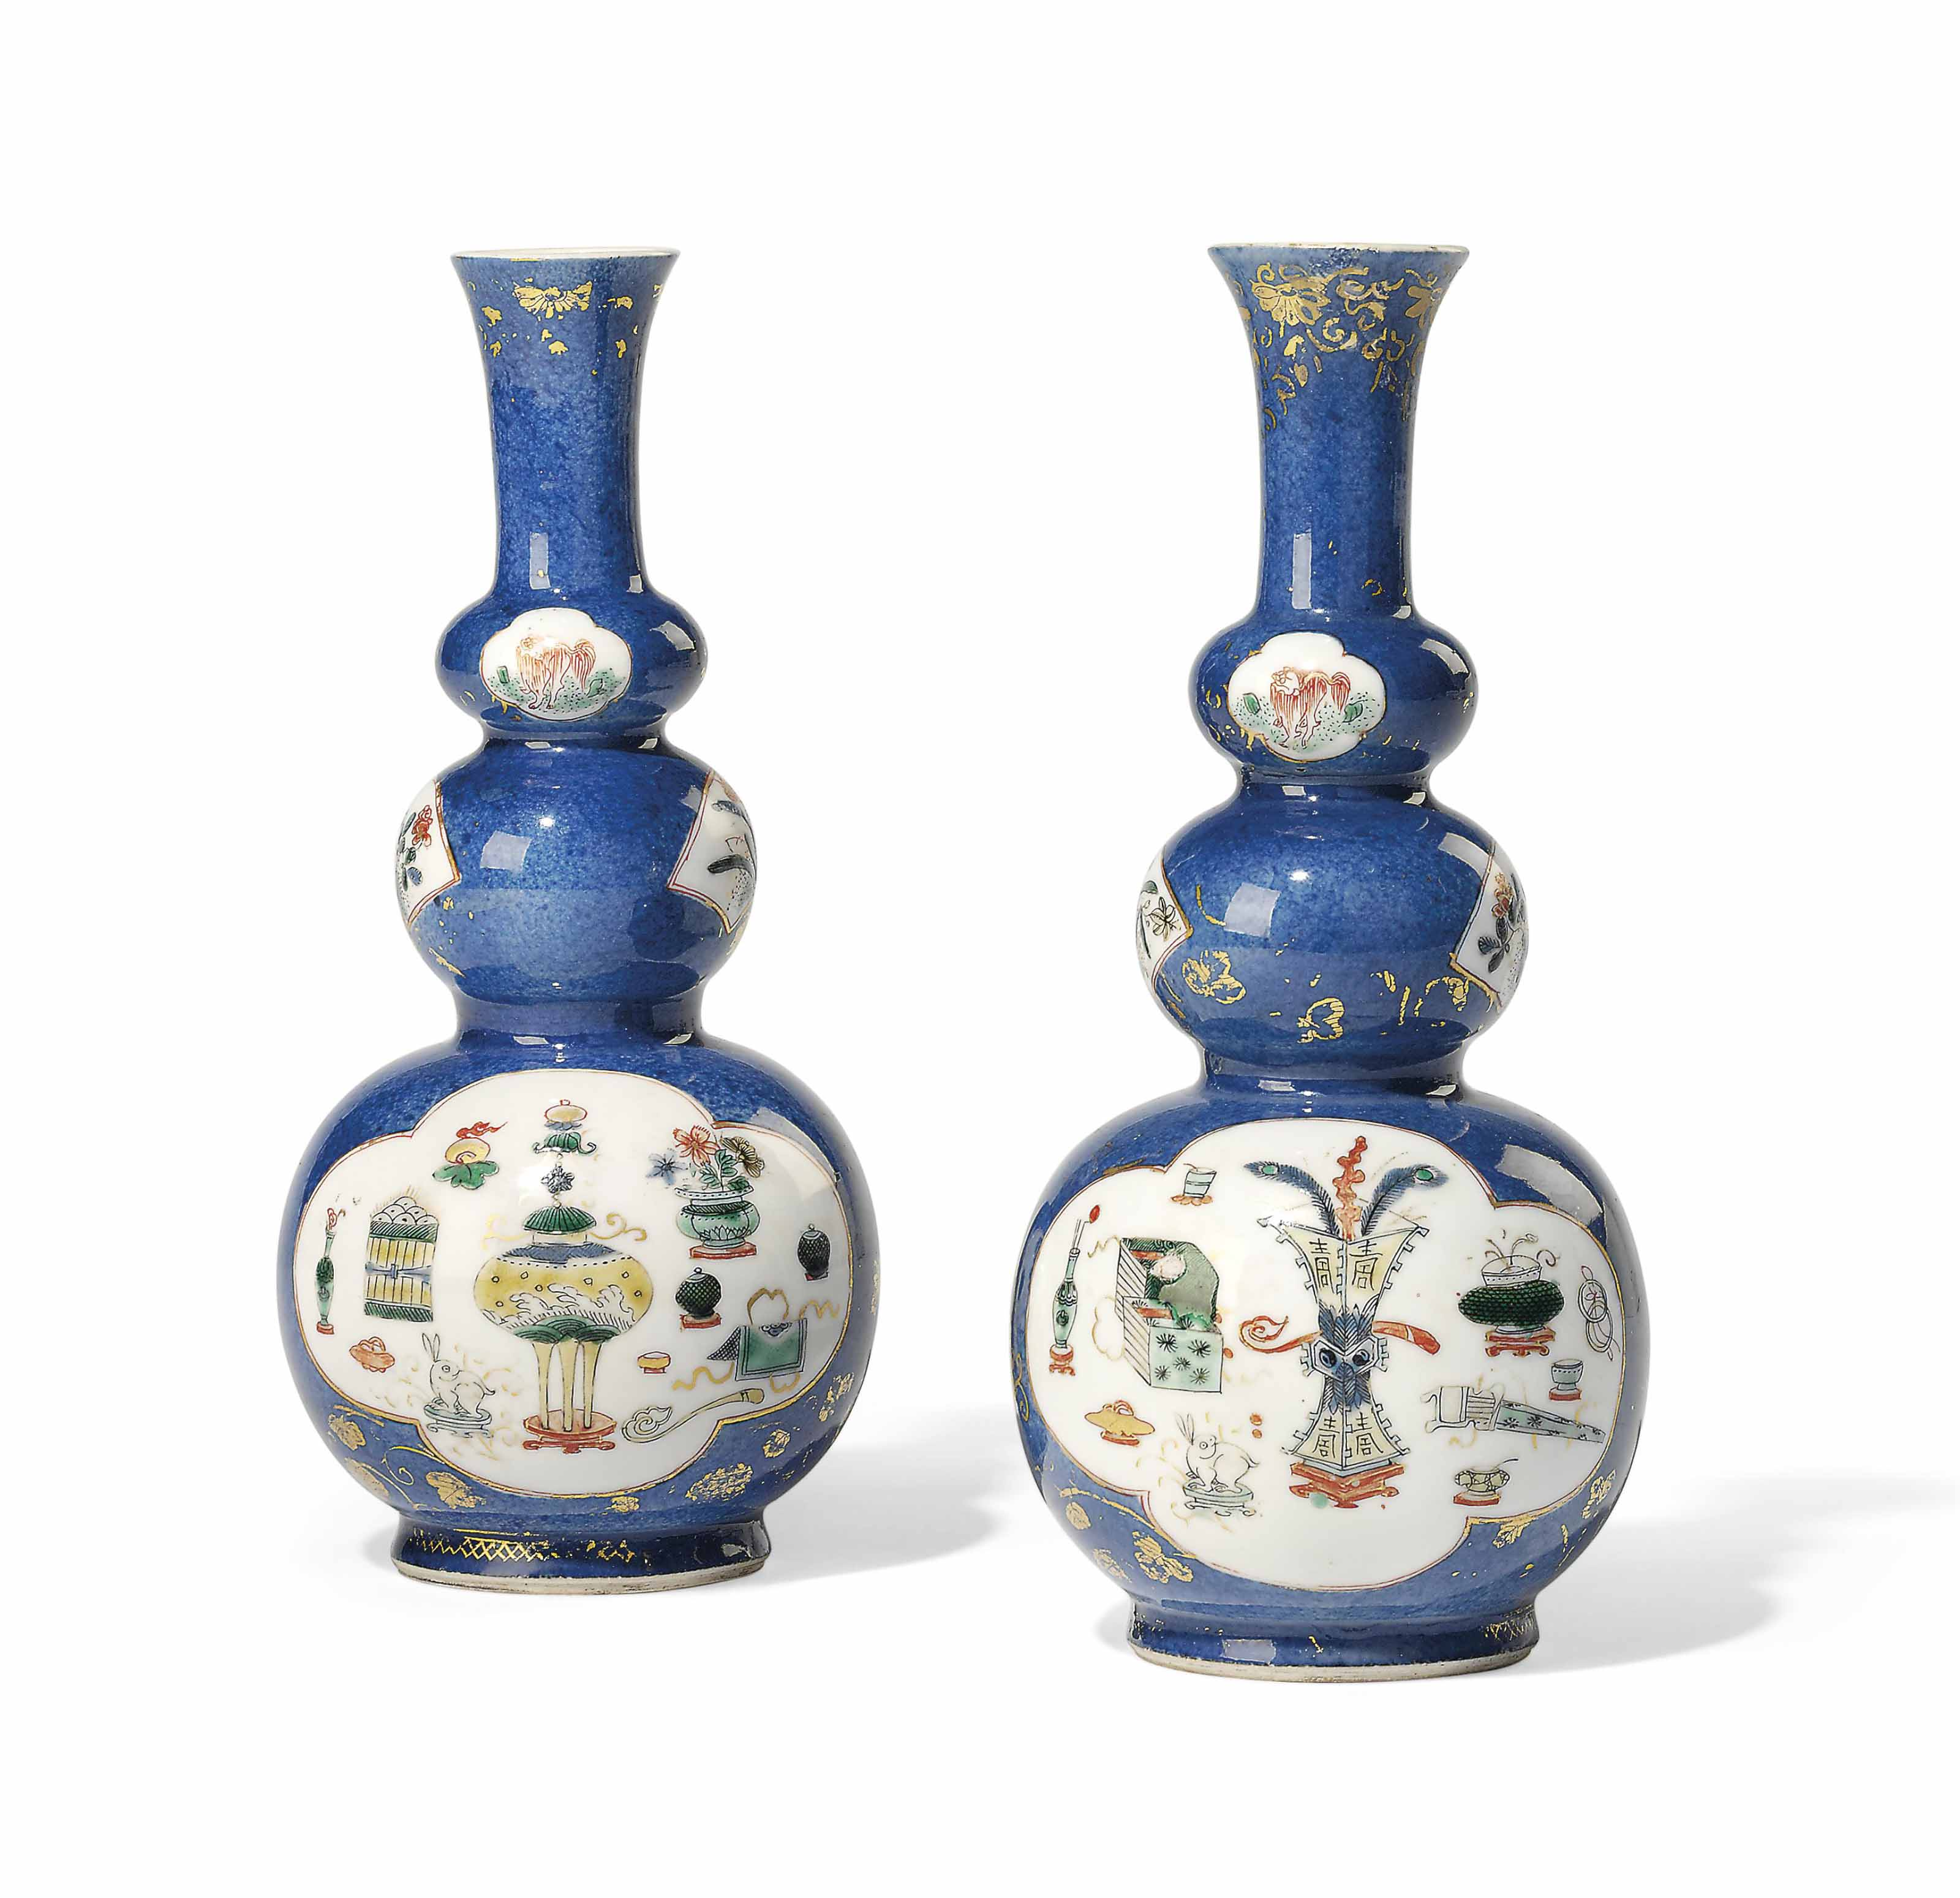 A PAIR OF CHINESE POWDER BLUE AND FAMILLE VERTE TRIPLE-GOURD VASES